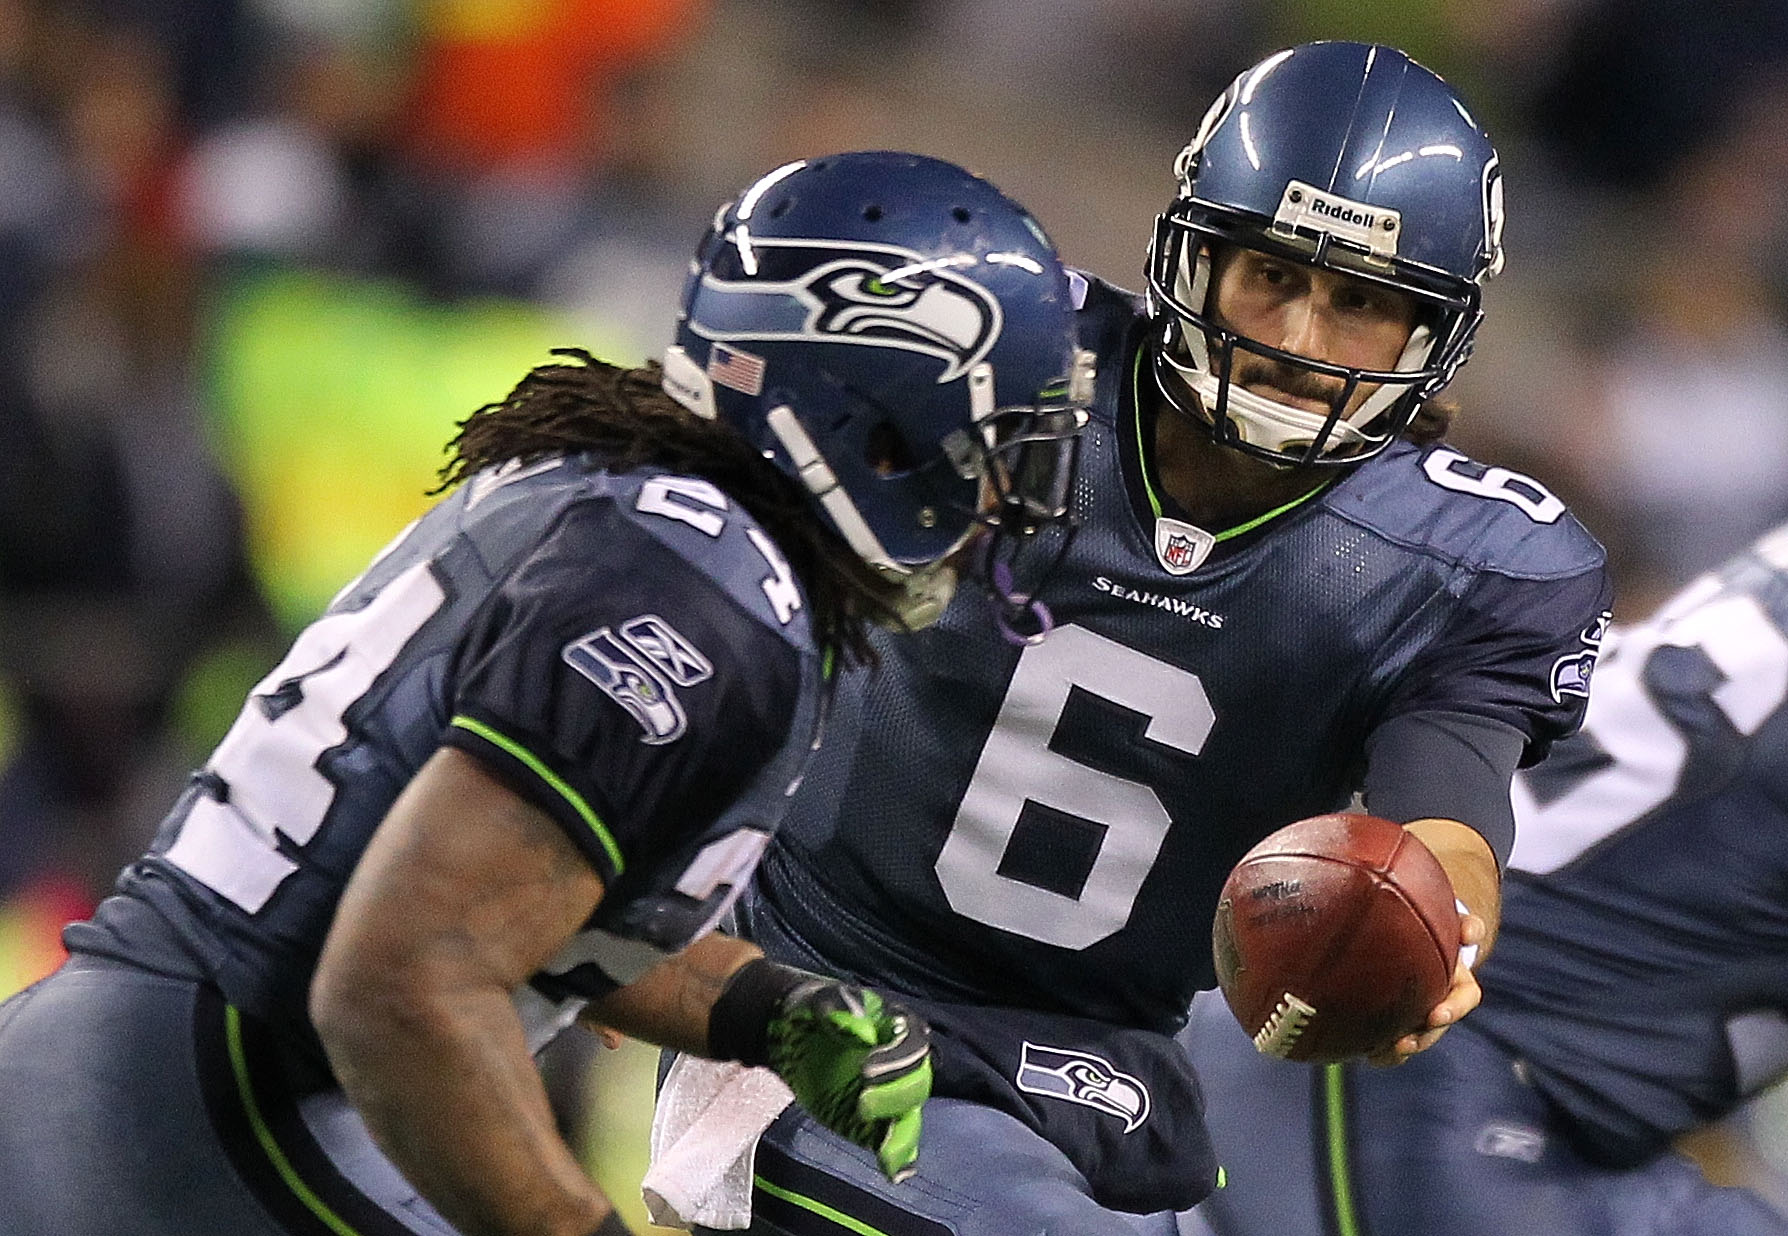 SEATTLE, WA - JANUARY 02:  Quarterback Charlie Whitehurst #6 of the Seattle Seahawks hands the ball off to running back Marshawn Lynch #24 during their game against the St. Louis Rams at Qwest Field on January 2, 2011 in Seattle, Washington.  (Photo by Ot